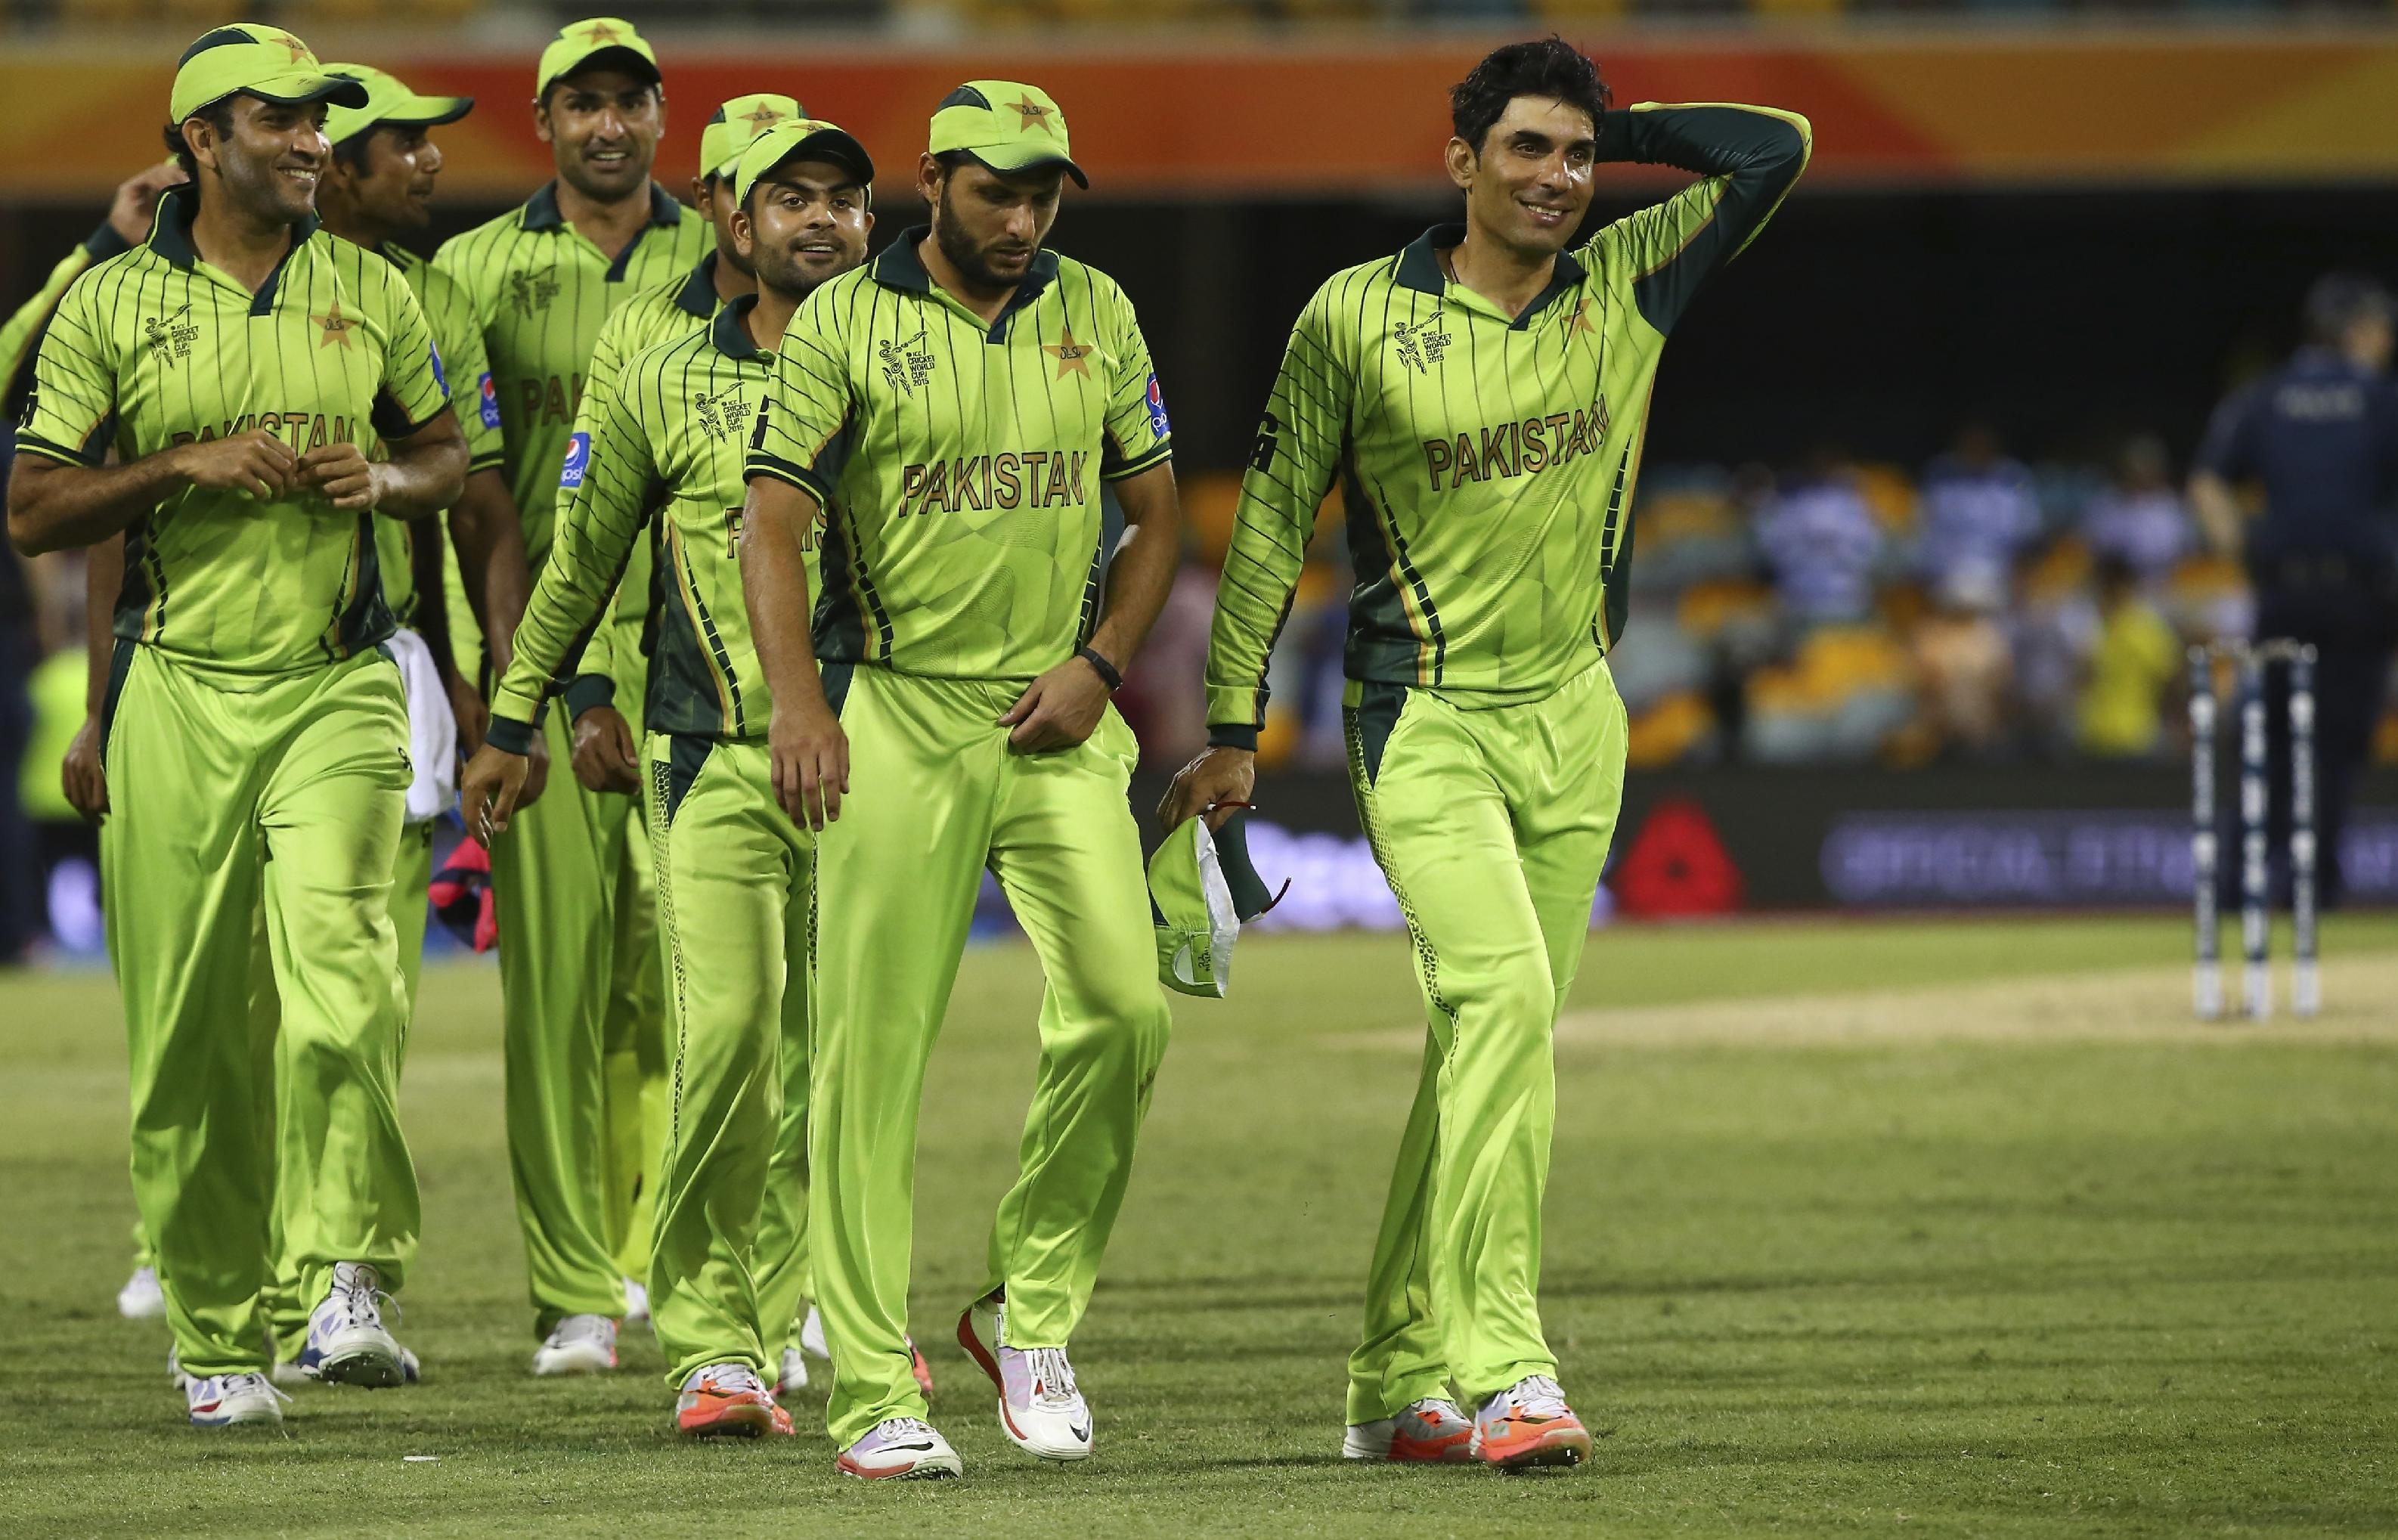 Pakistan seeks batting form in World Cup clash with UAE